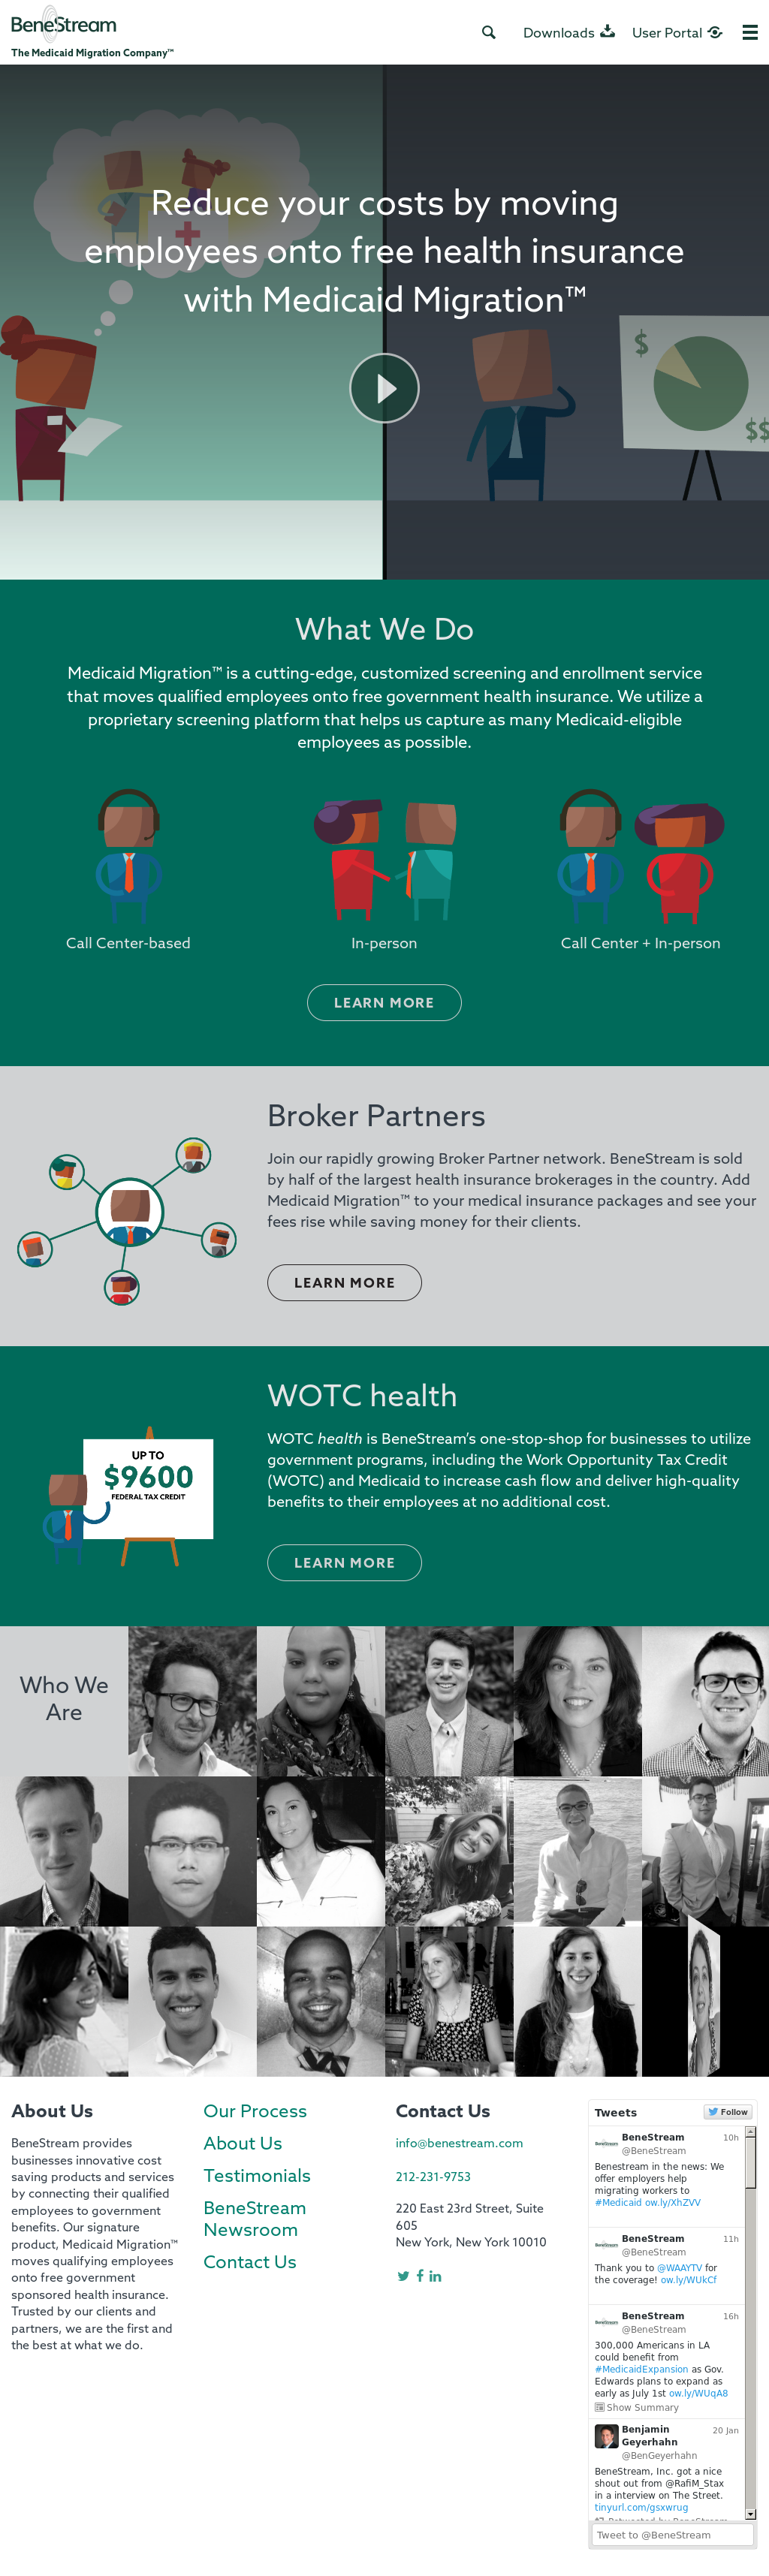 BeneStream Competitors, Revenue and Employees - Owler